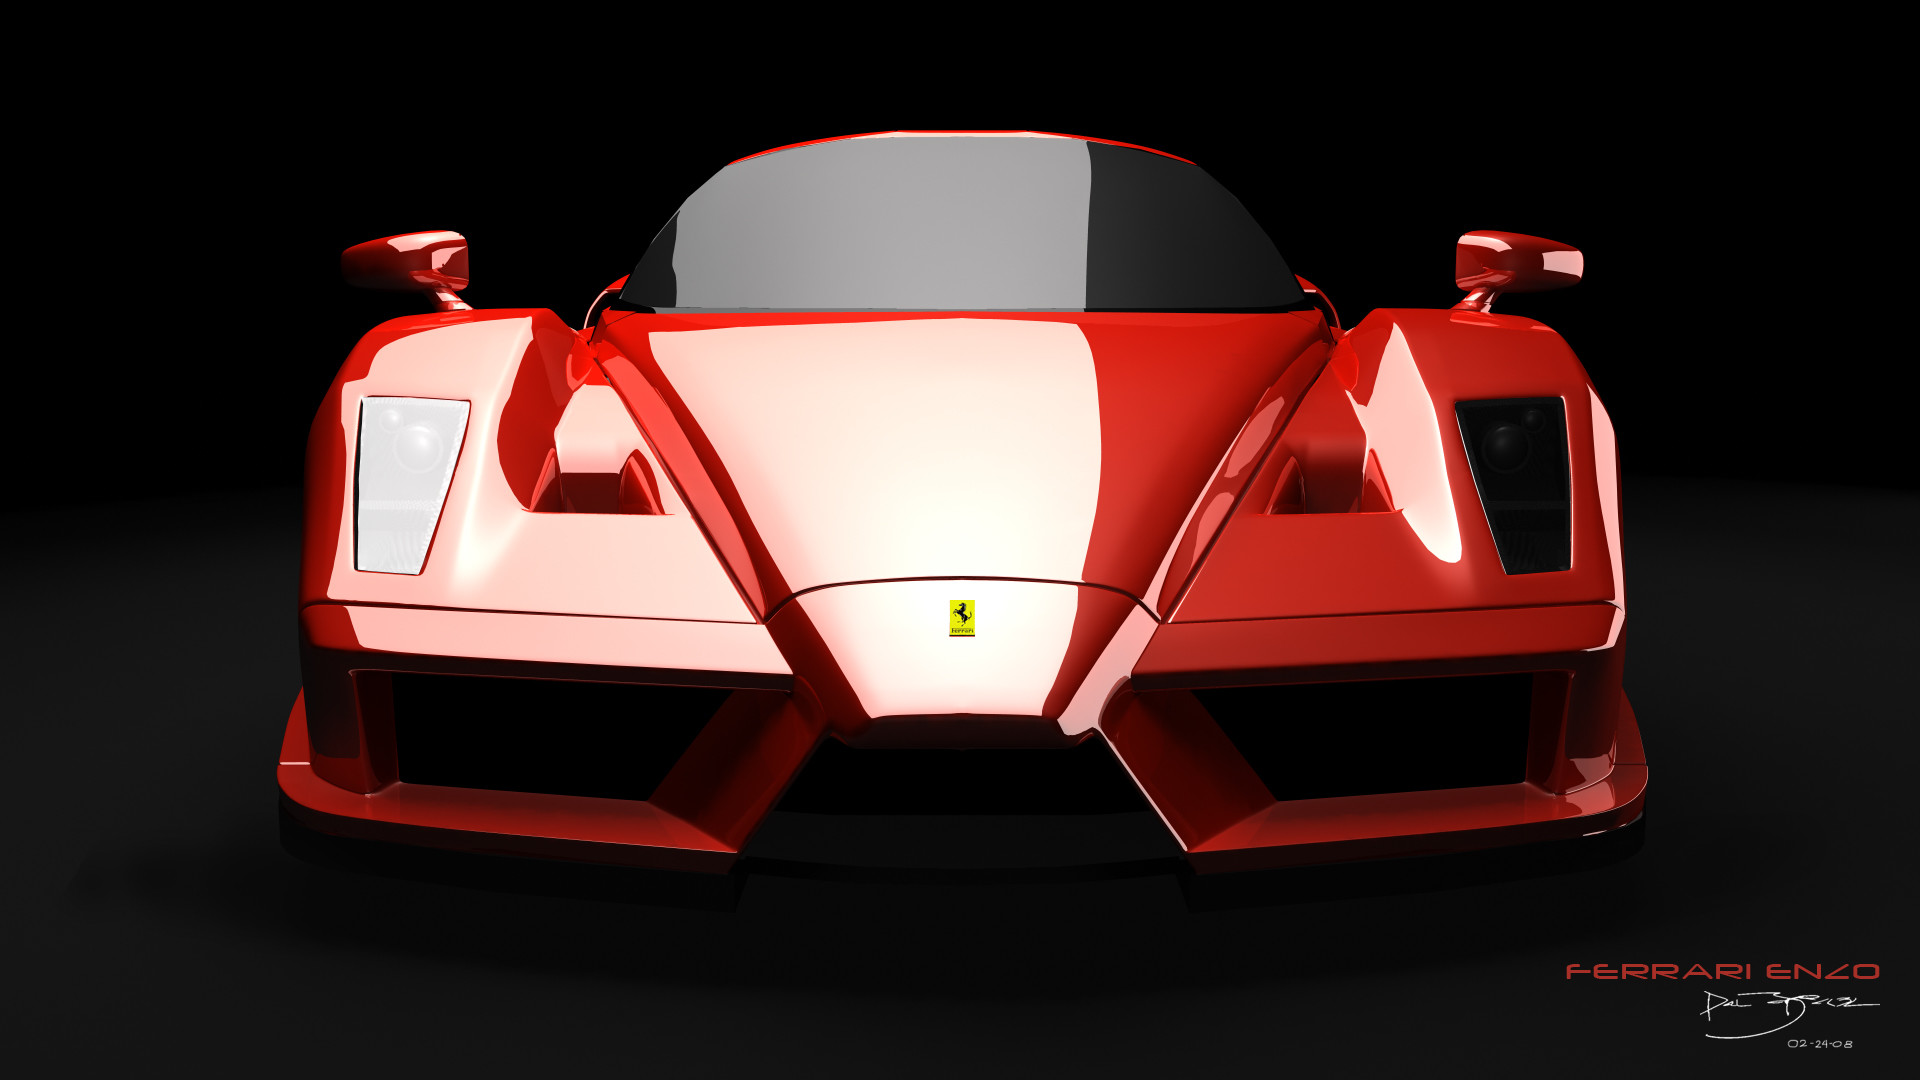 1920x1080 Download: Ferrari Enzo HD Wallpaper ...